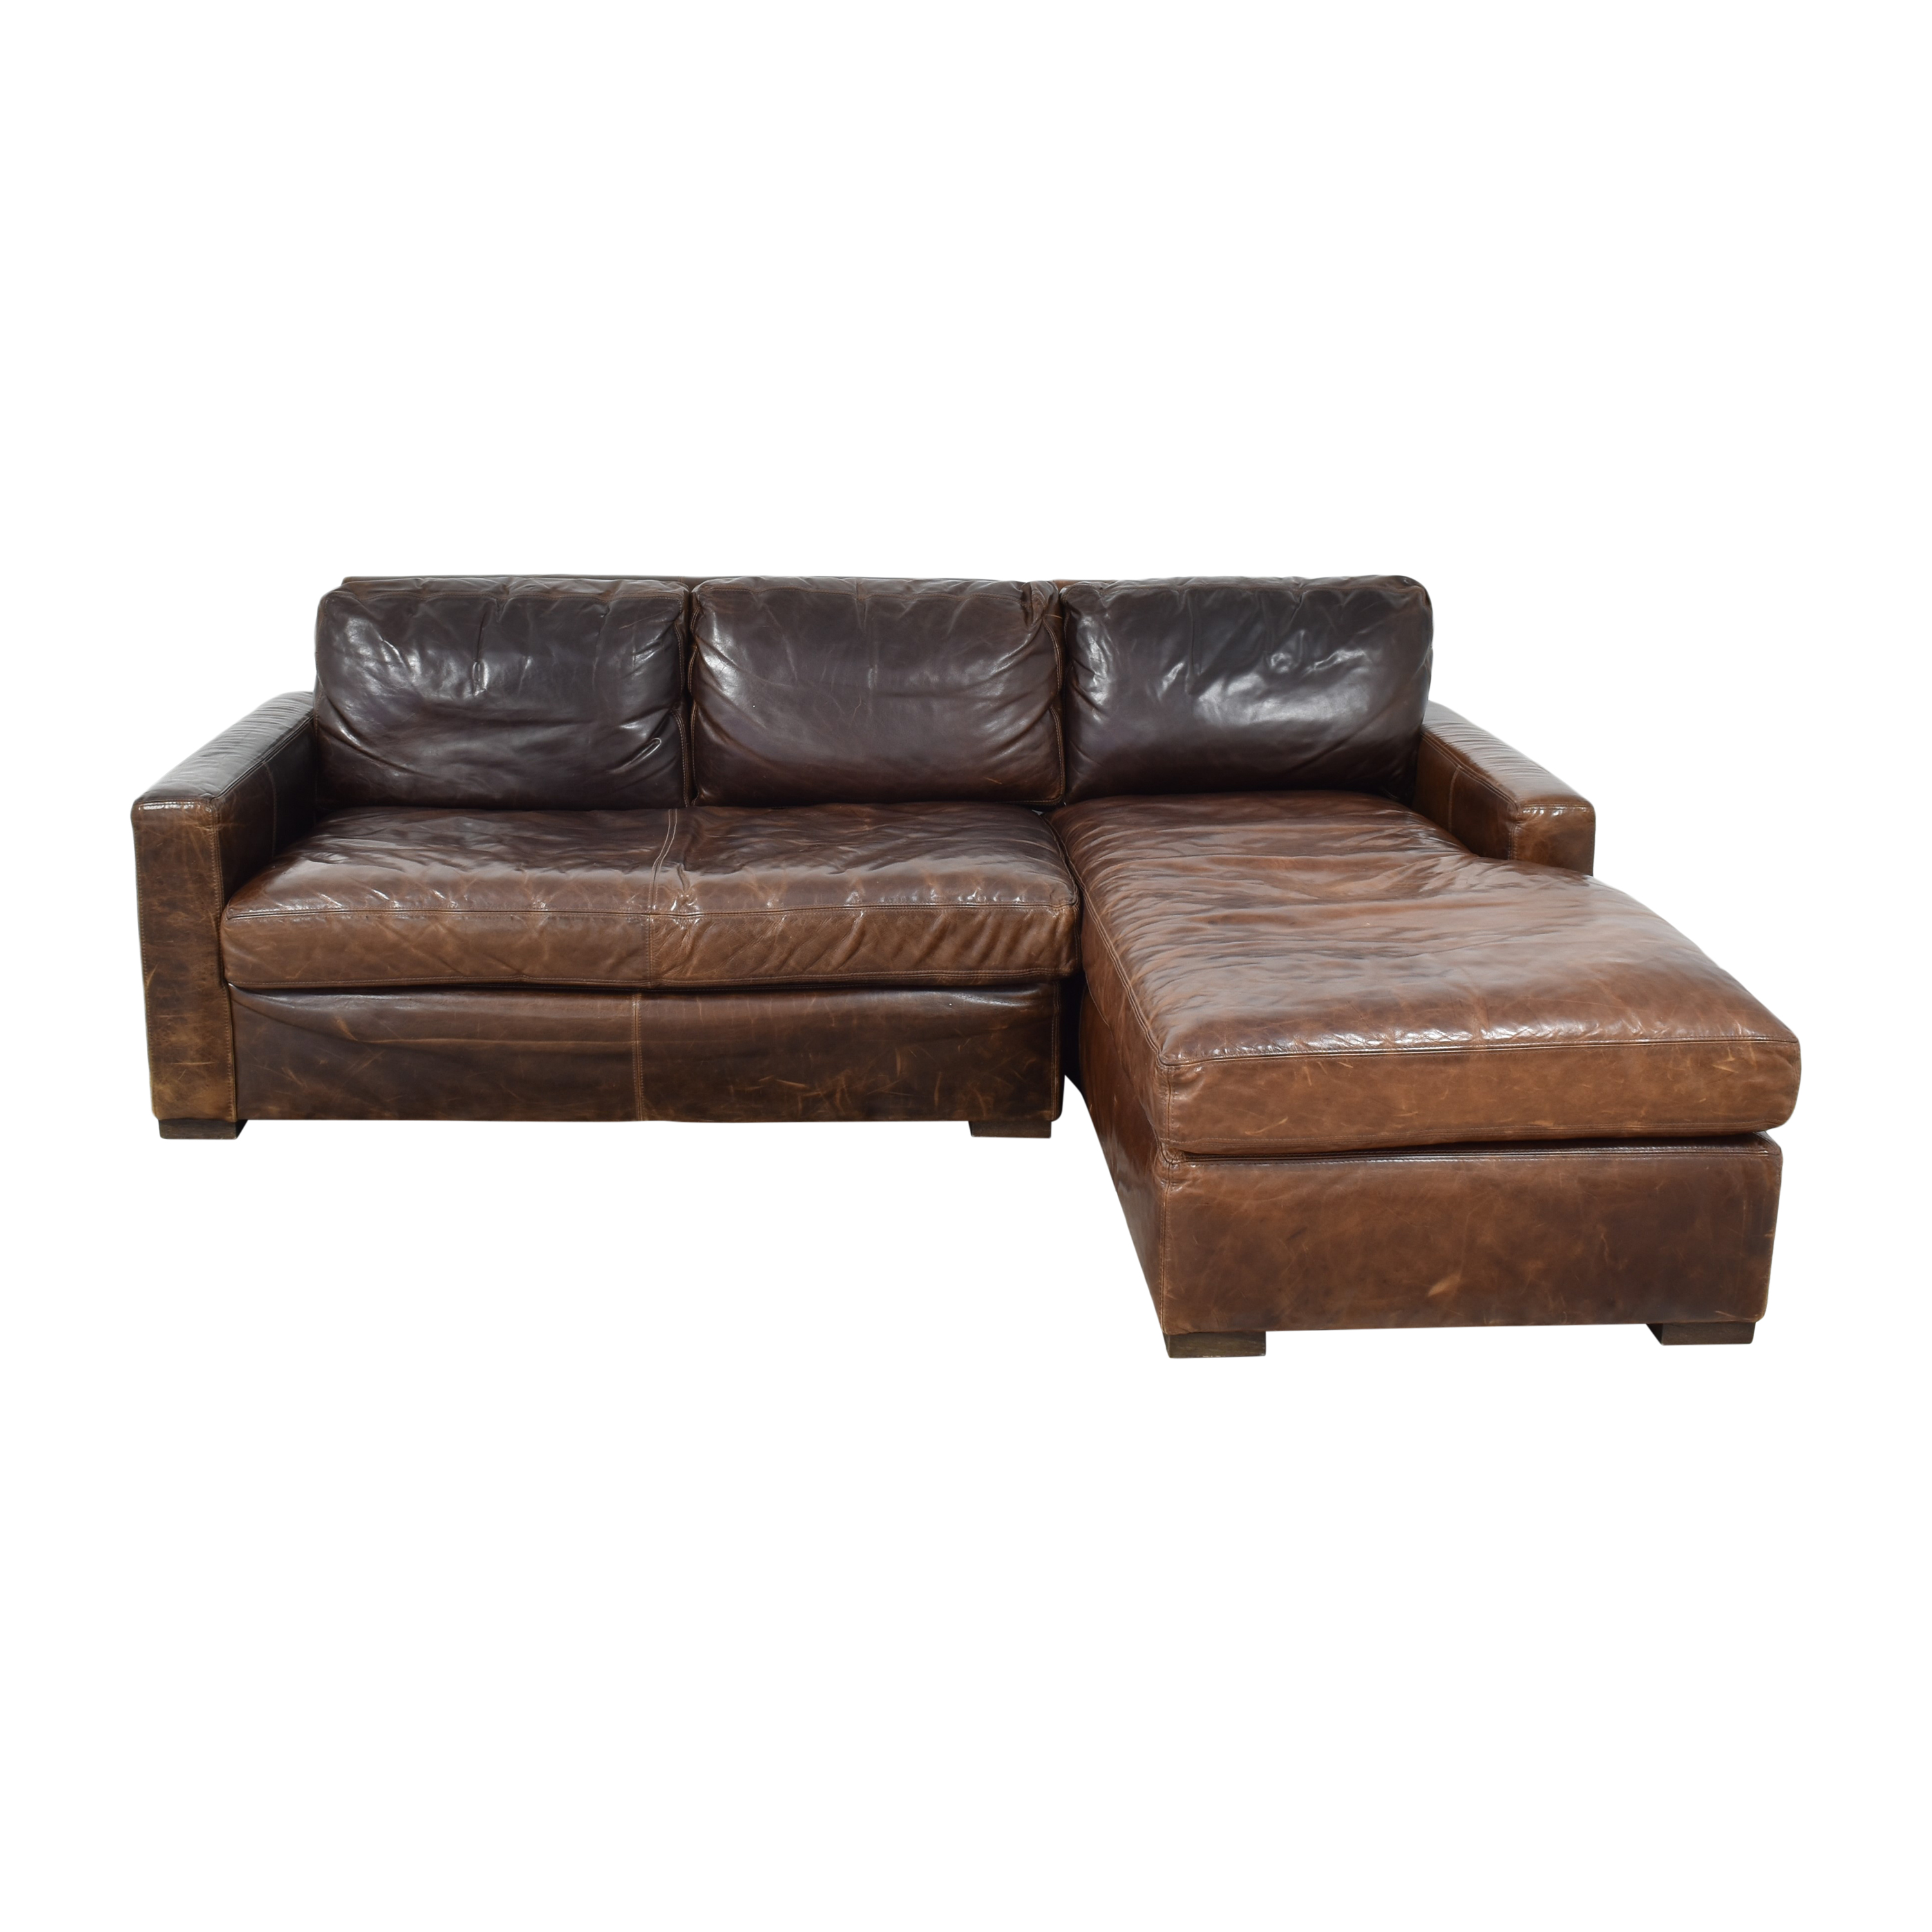 Restoration Hardware Restoration Hardware Petite Maxwell Chaise Sectional brown